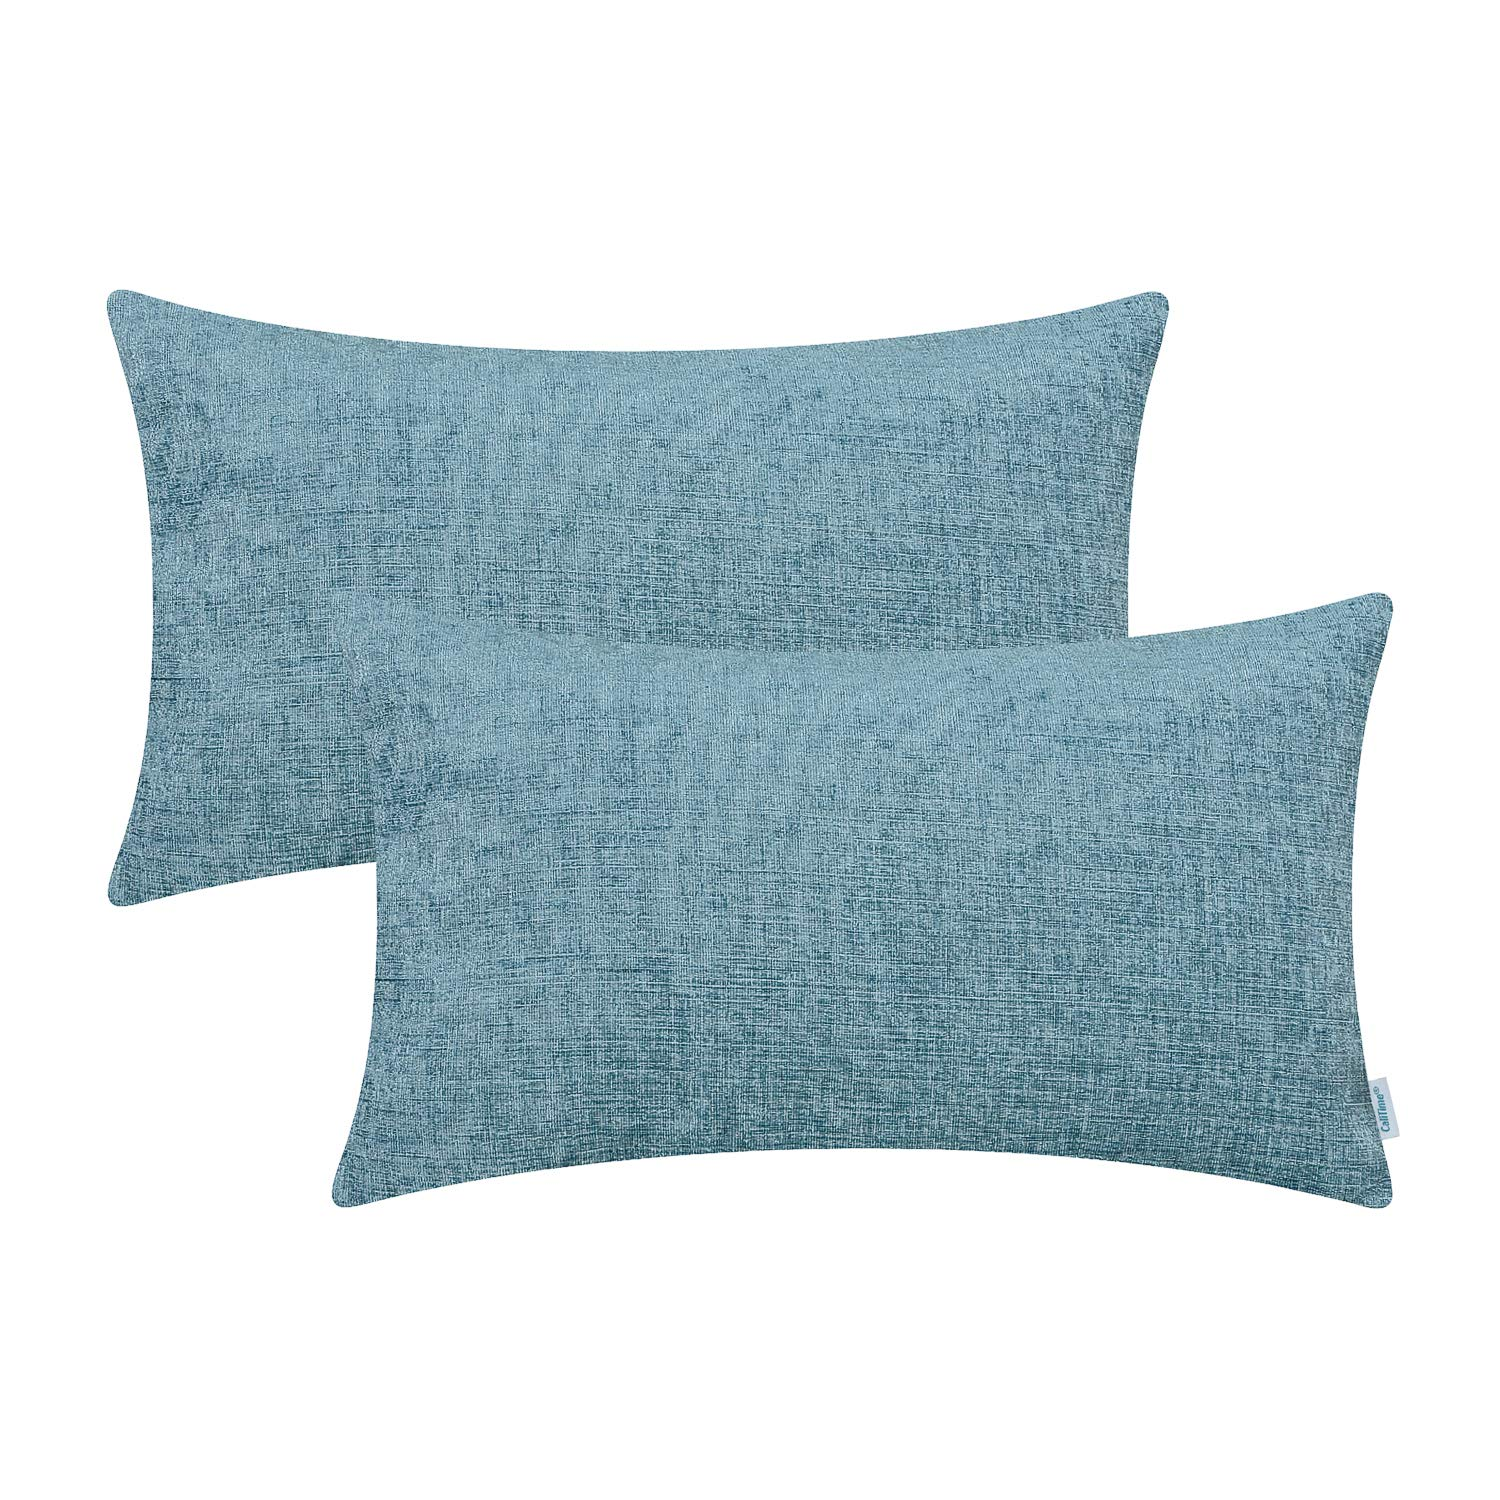 CaliTime Pack of 2 Cozy Bolster Pillow Covers Cases for Couch Sofa Home Decoration Solid Dyed Soft Chenille 12 X 20 Inches Smoke Blue